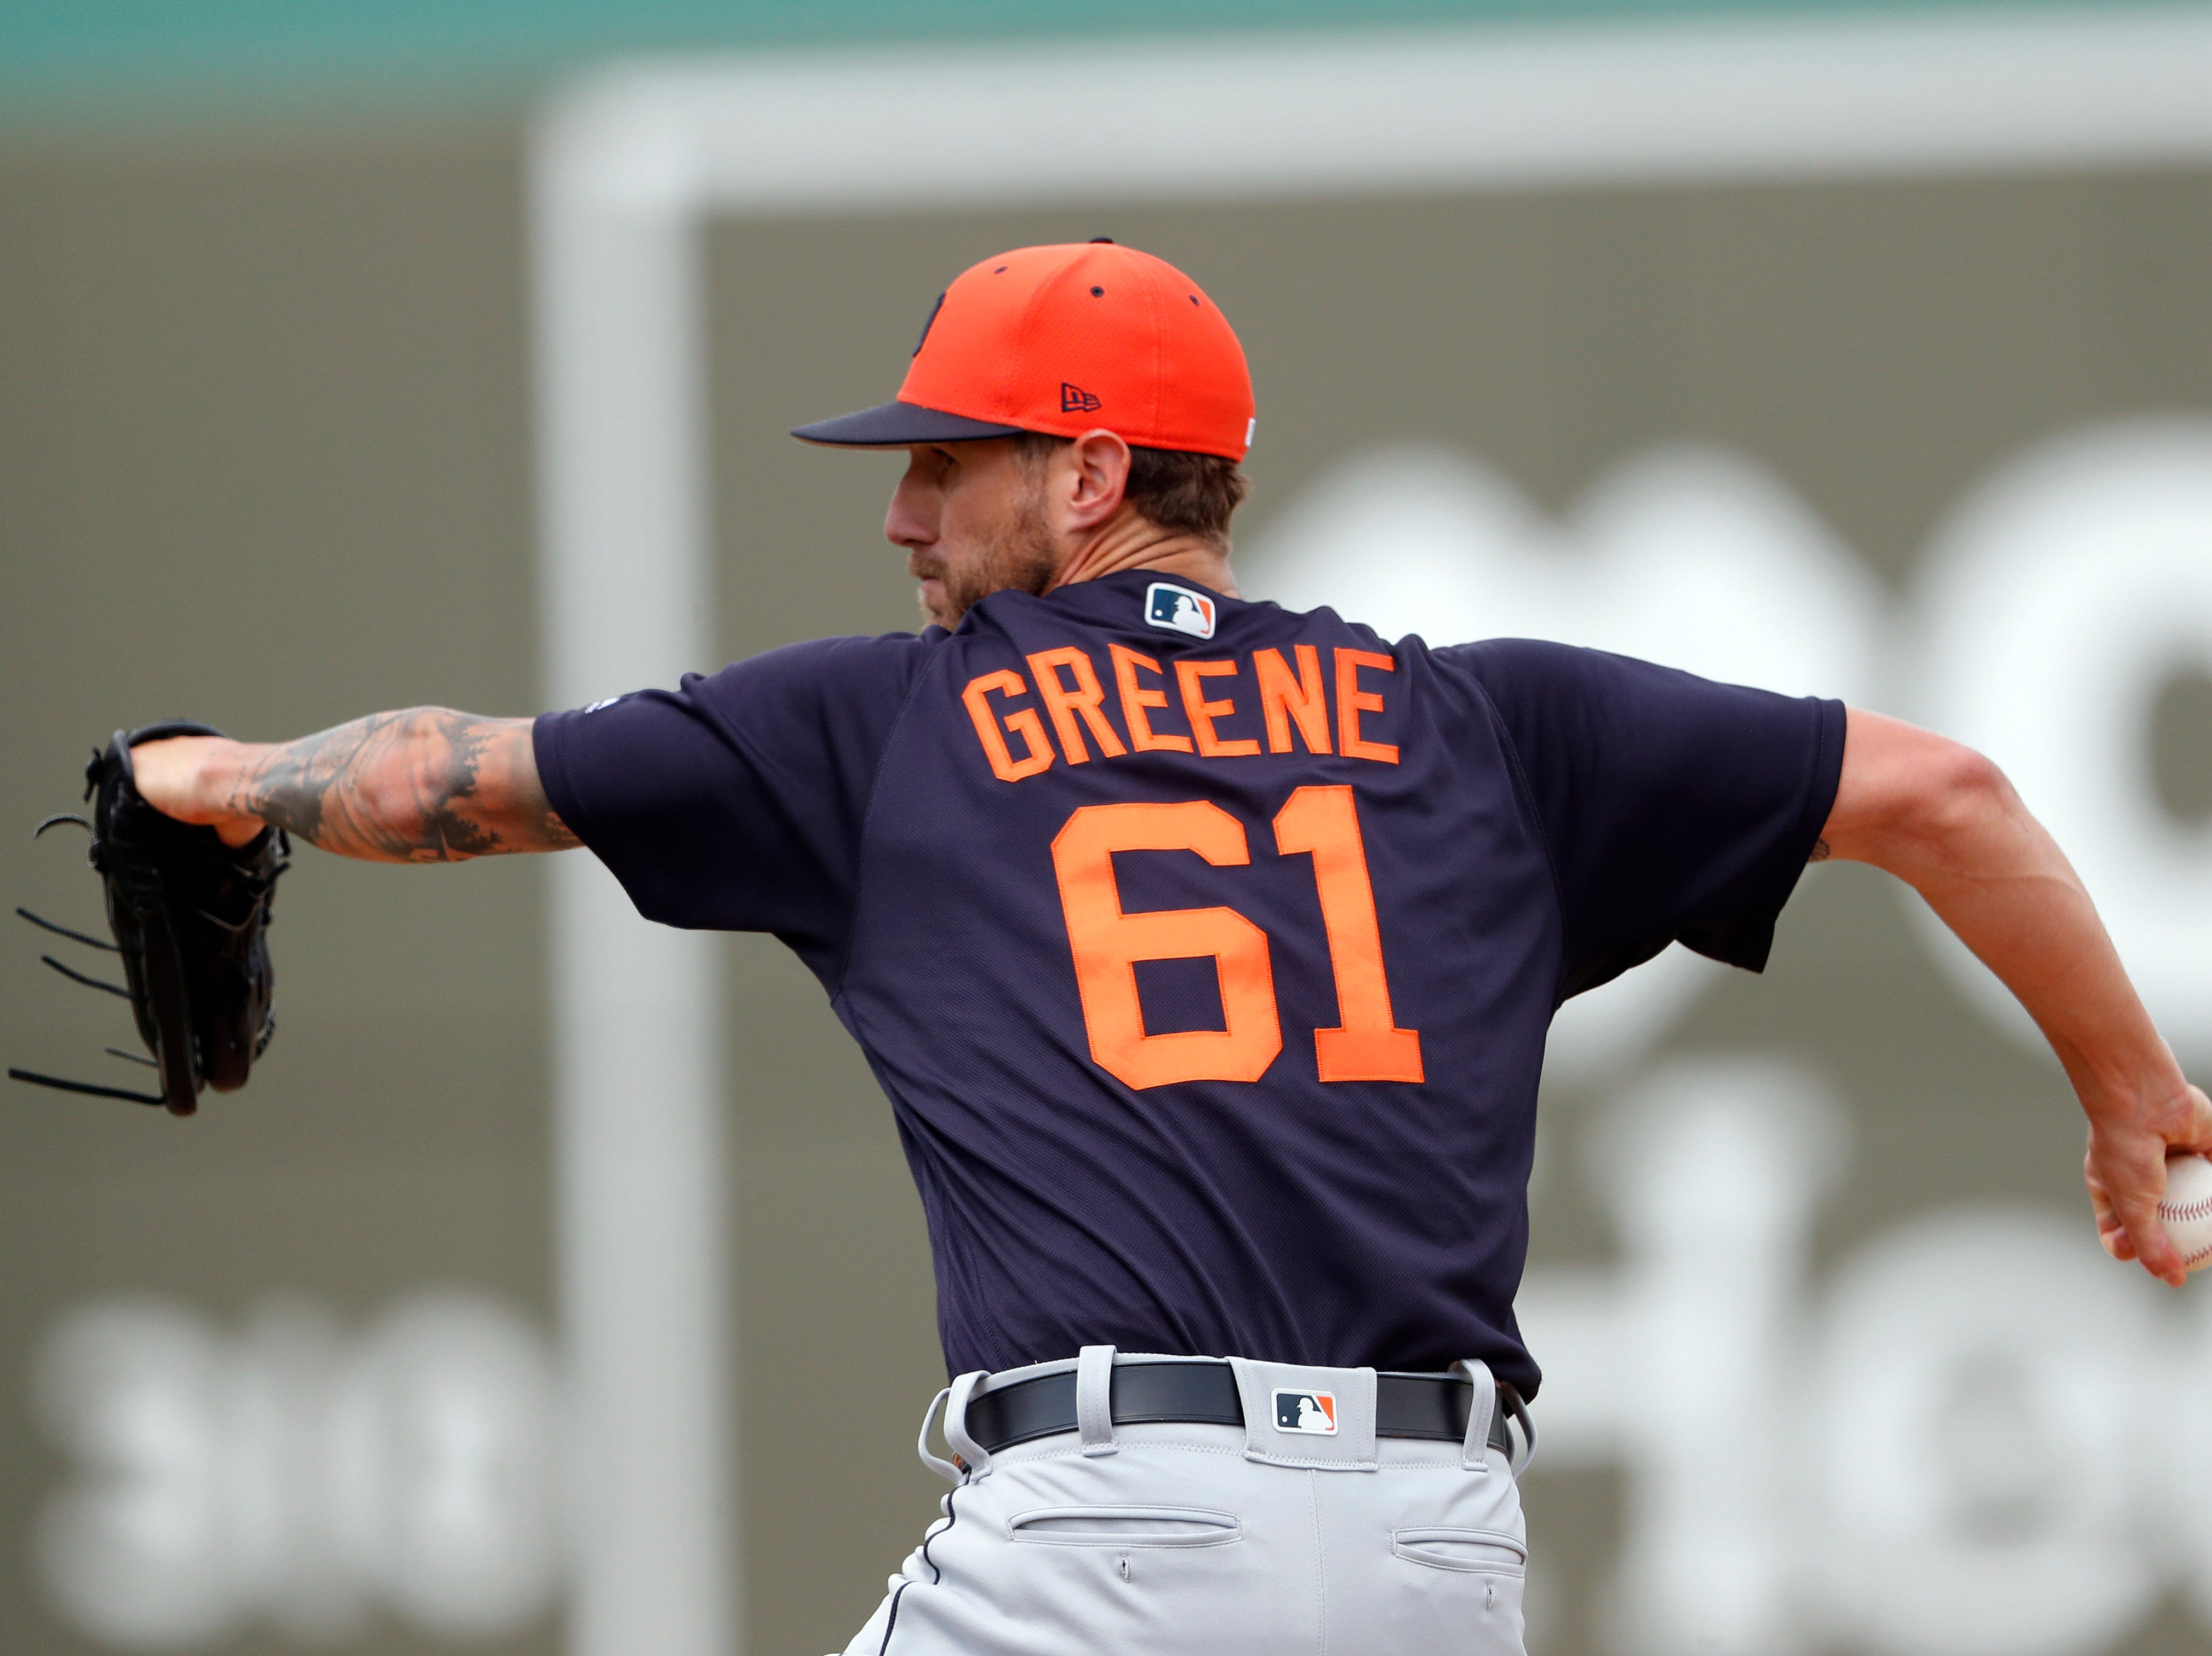 Detroit Tigers relief pitcher Shane Greene  works against Boston Red Sox in the fourth inning of a spring training game Tuesday, March 12, 2019, in Fort Myers, Fla. He pitched a scoreless inning.